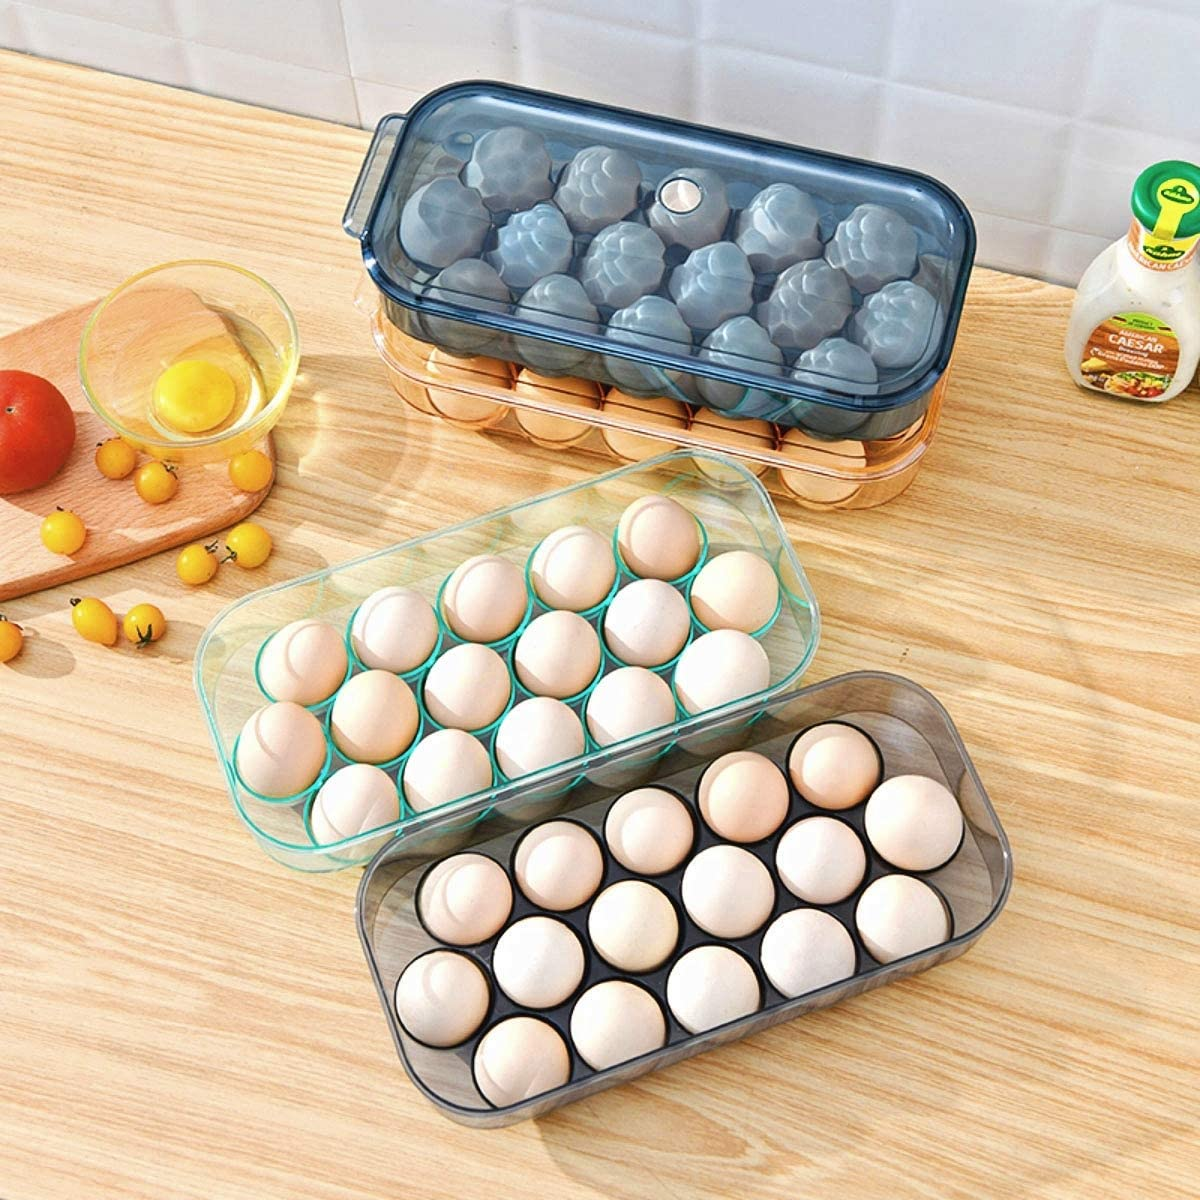 Black 4 colors Roaring Hippo Egg Holder for Refrigerator,translucent egg storage box ,stackable egg tray with lid,can hold 16 egg rack refrigerator containers.